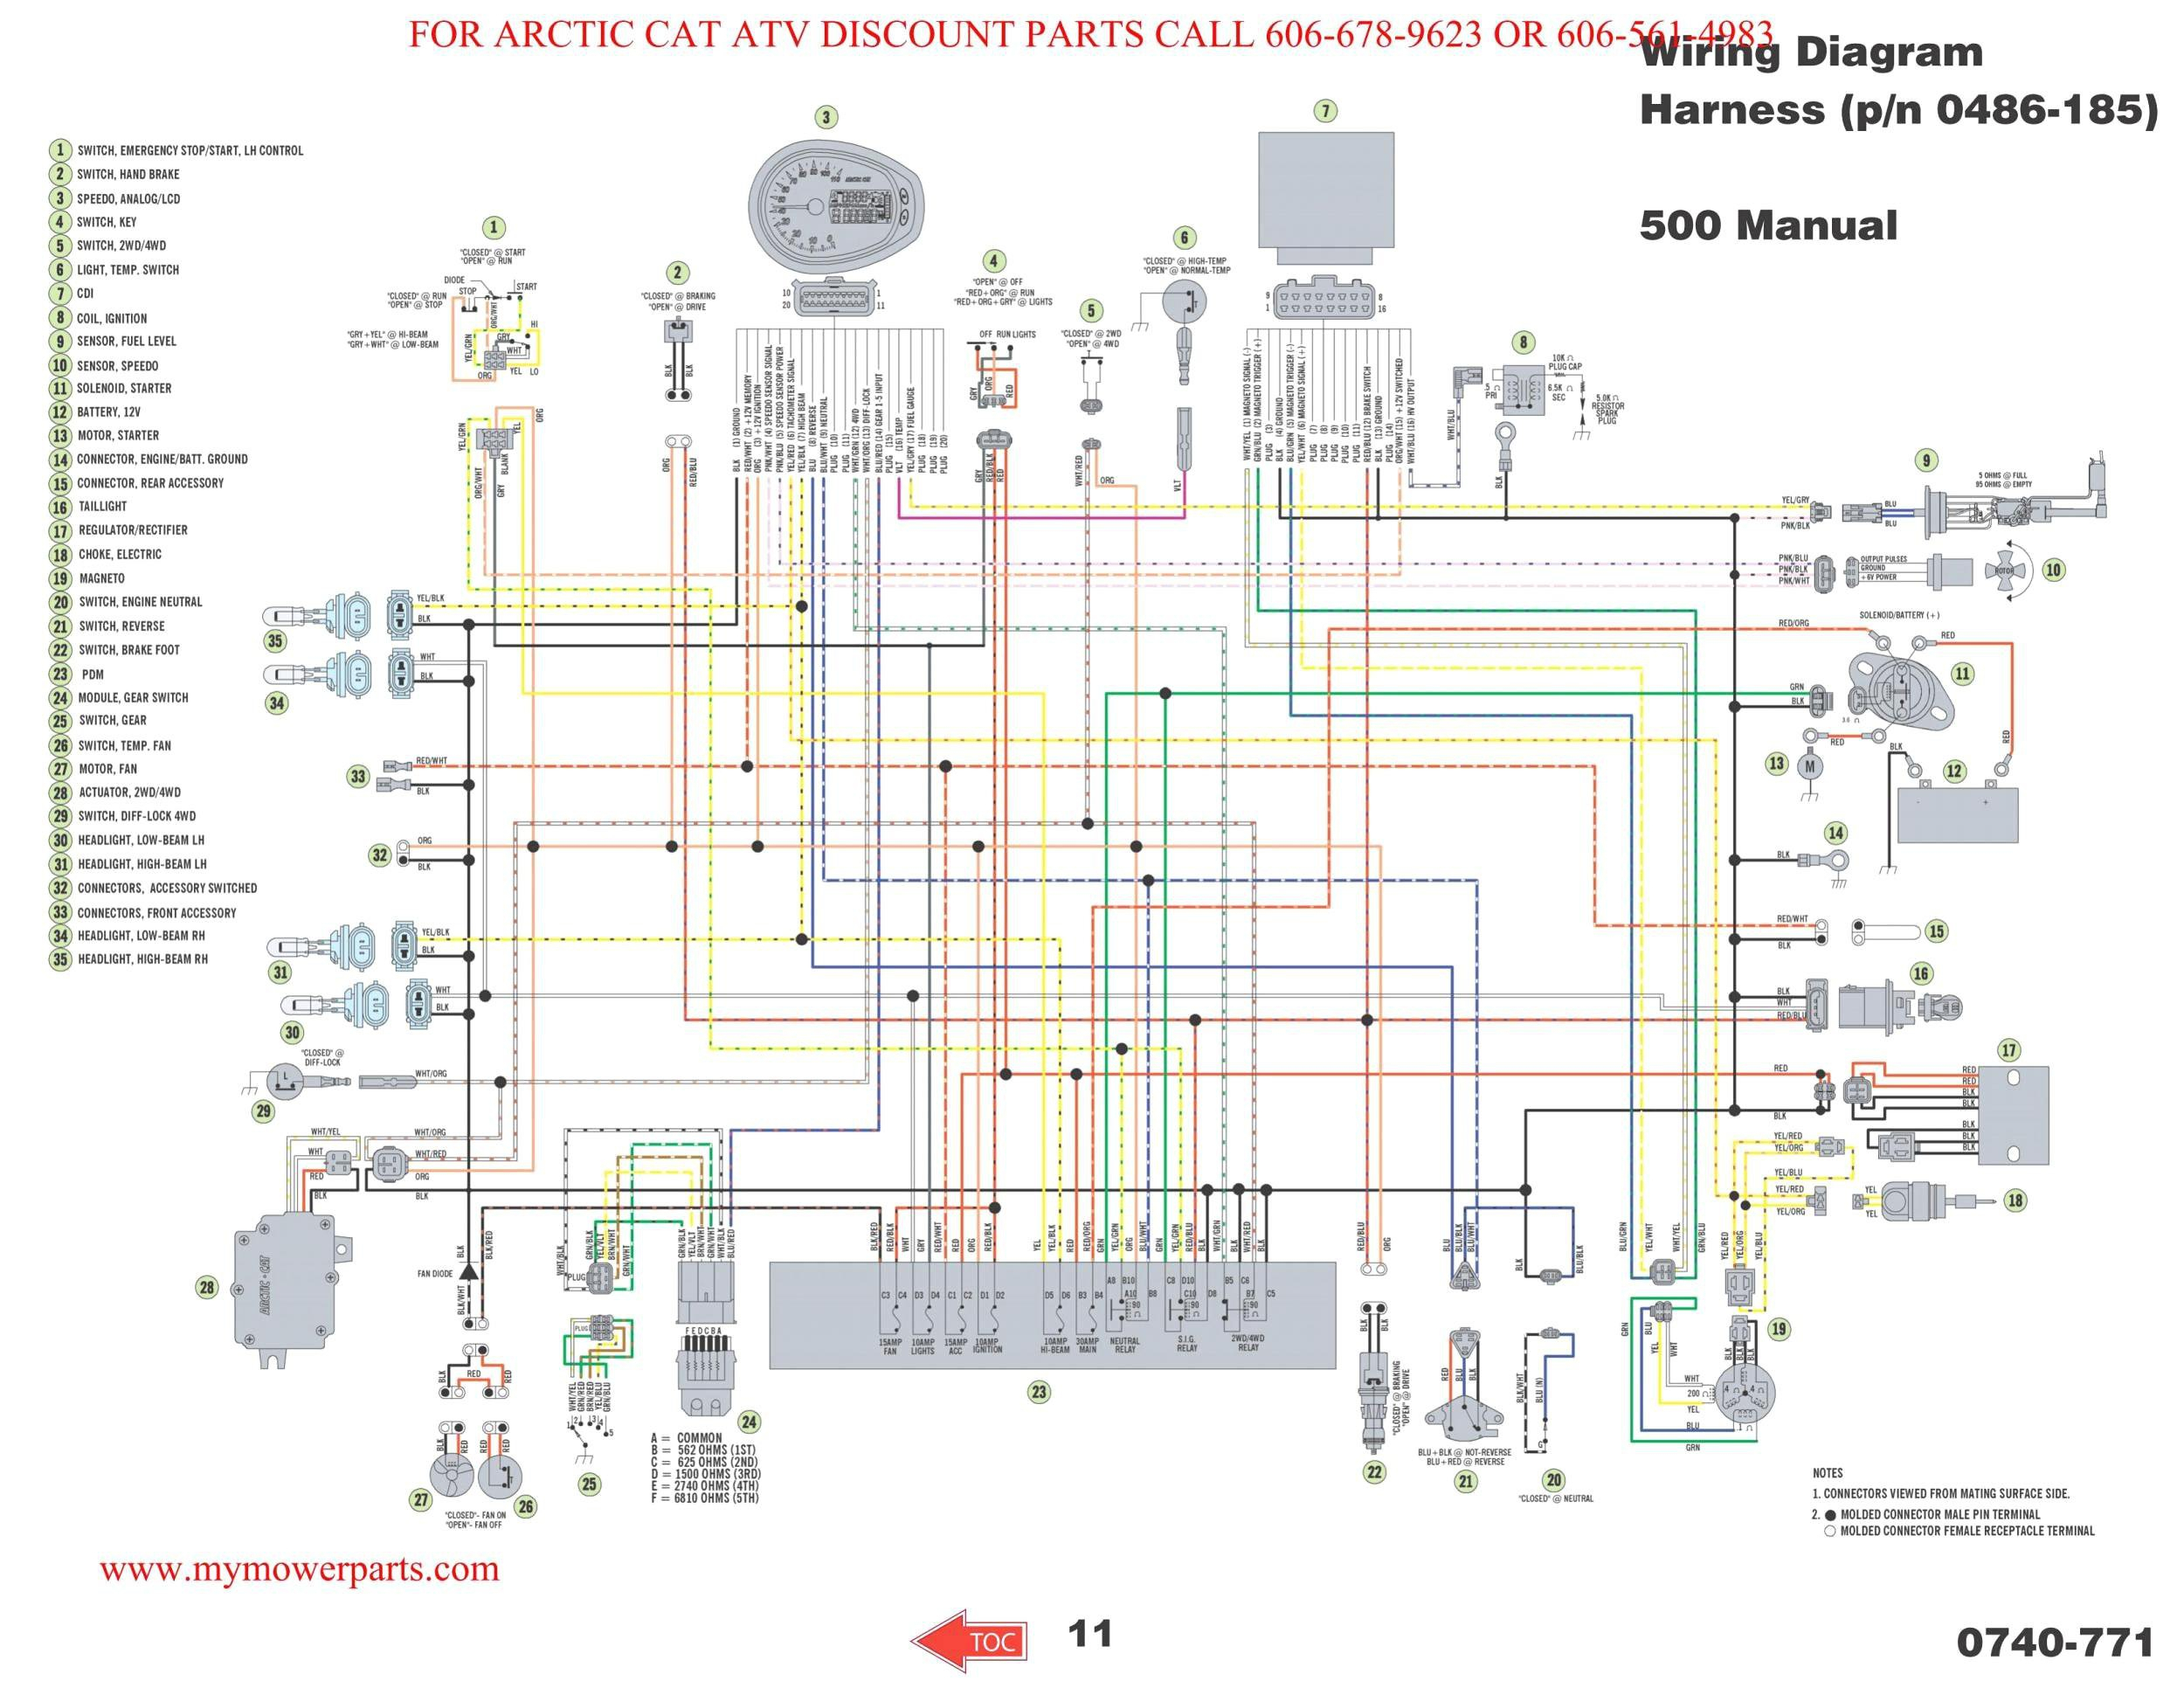 polaris sportsman 400 wiring diagram 2005 polaris sportsman 400 wiring diagram #3